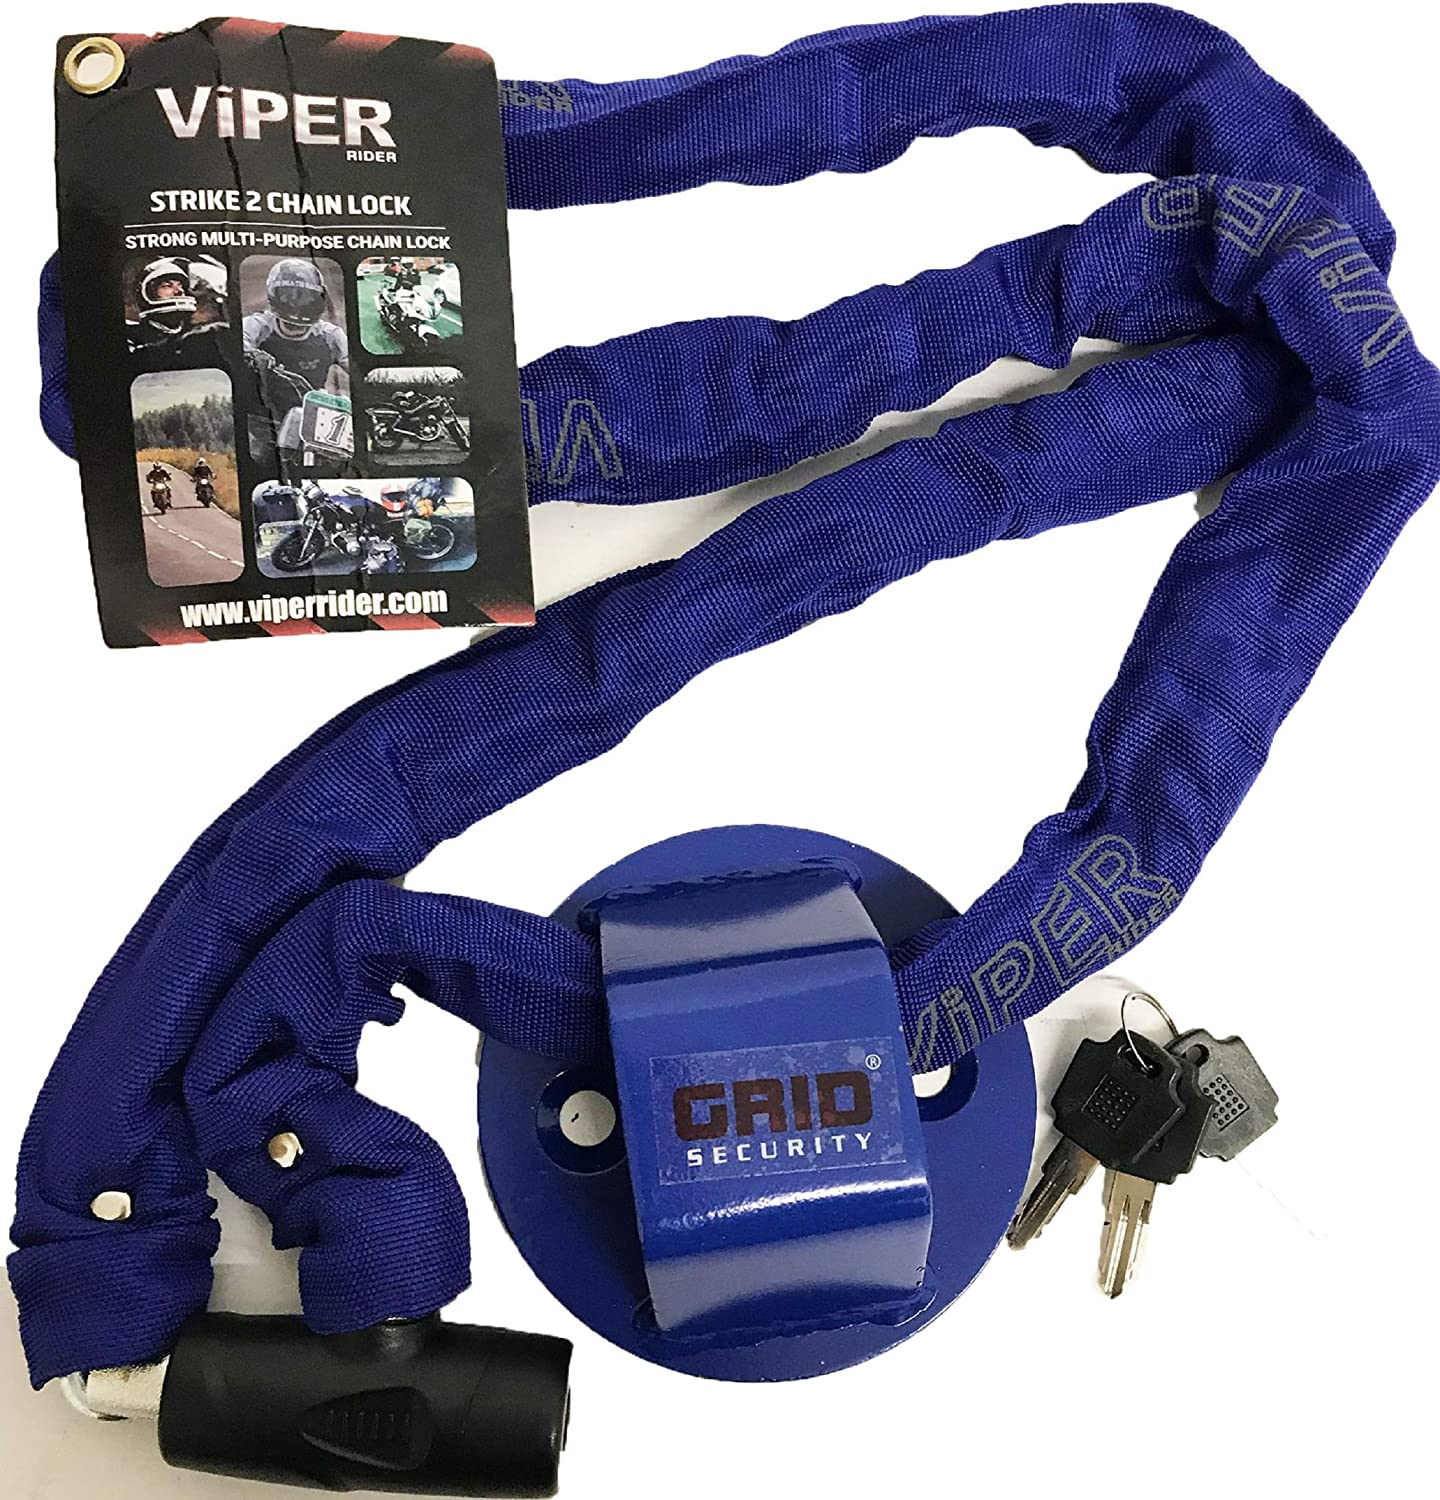 Motorcycle Security Grid Ground Anchor 1.8m Chain Lock Viper Strike2 Rock Solid Motorbike Scooter Securing Kit